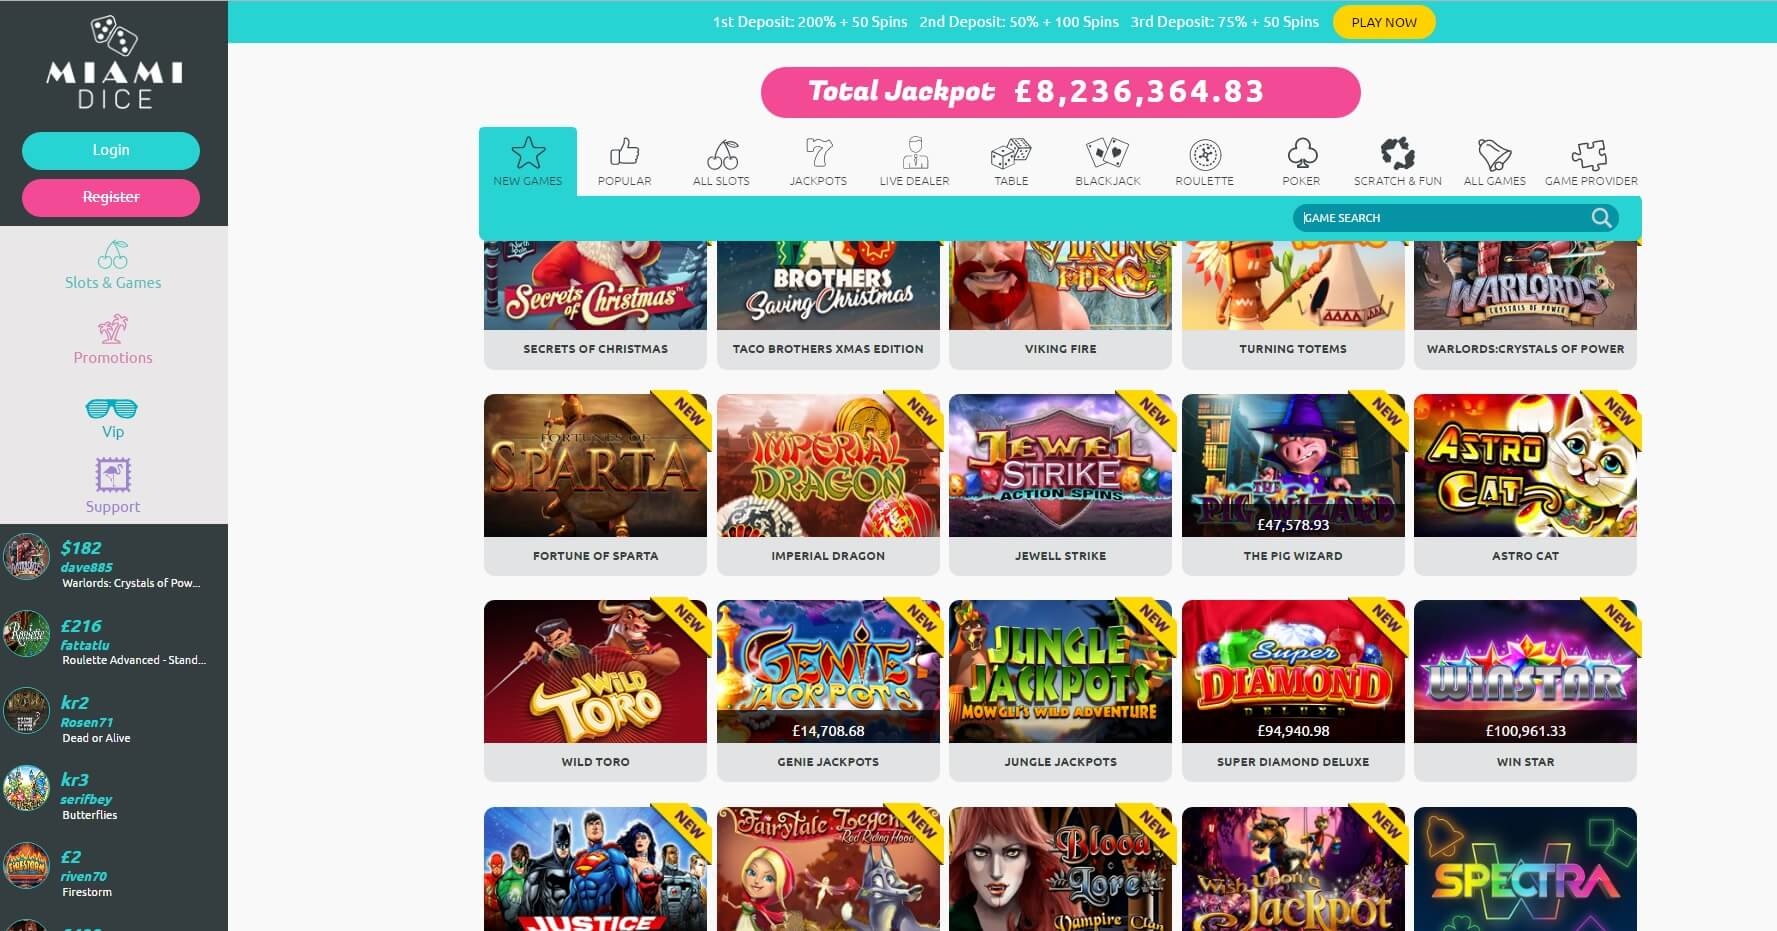 free online mobile casino casino games dice